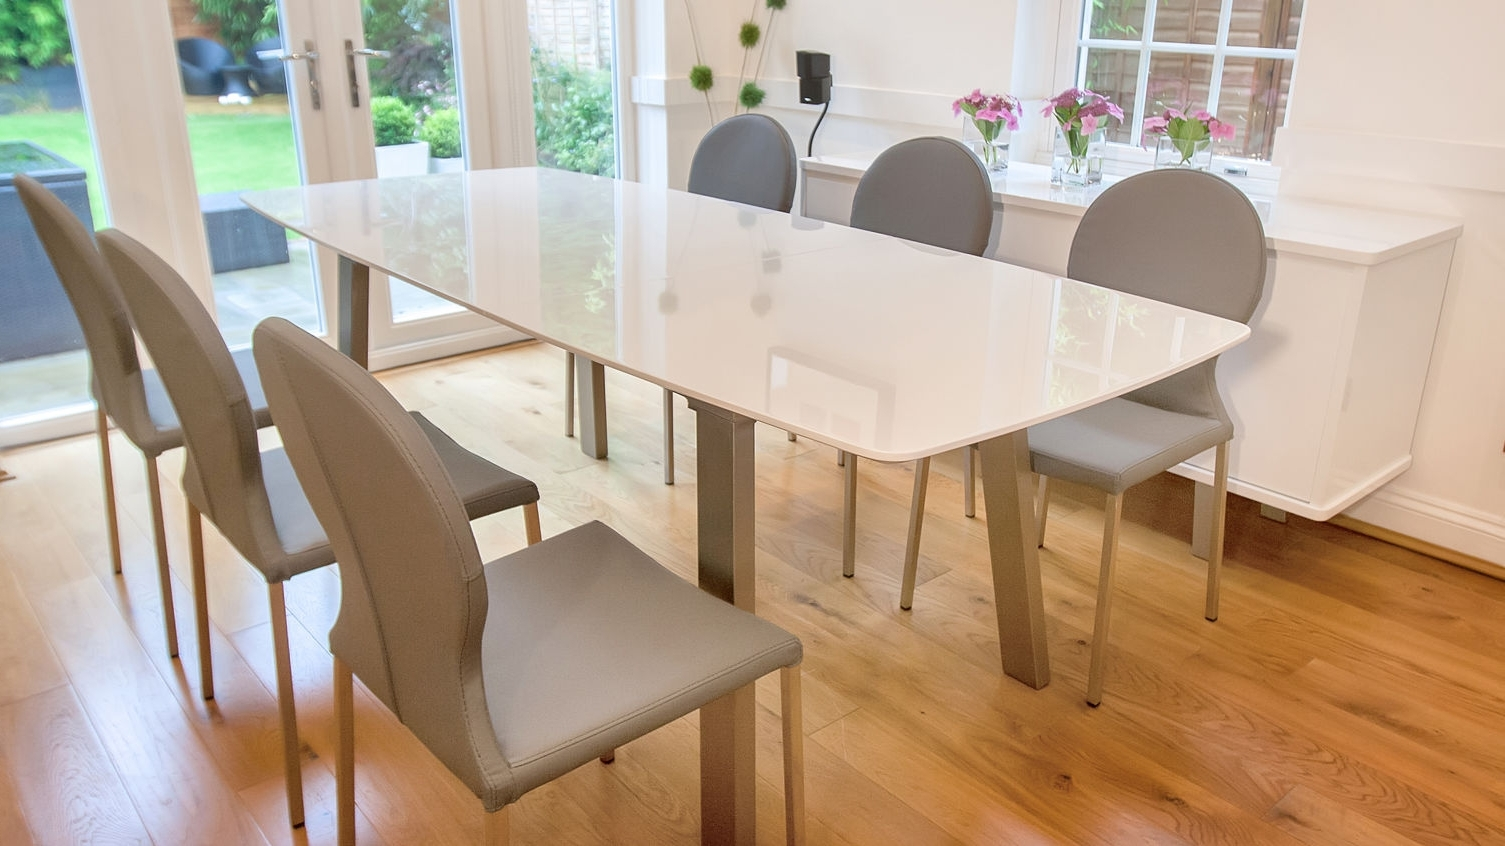 Extendable Dining Tables With 8 Seats Intended For Fashionable Extending Dining Room Tables And Chairs Dining Room Chair Slipcovers (View 14 of 25)